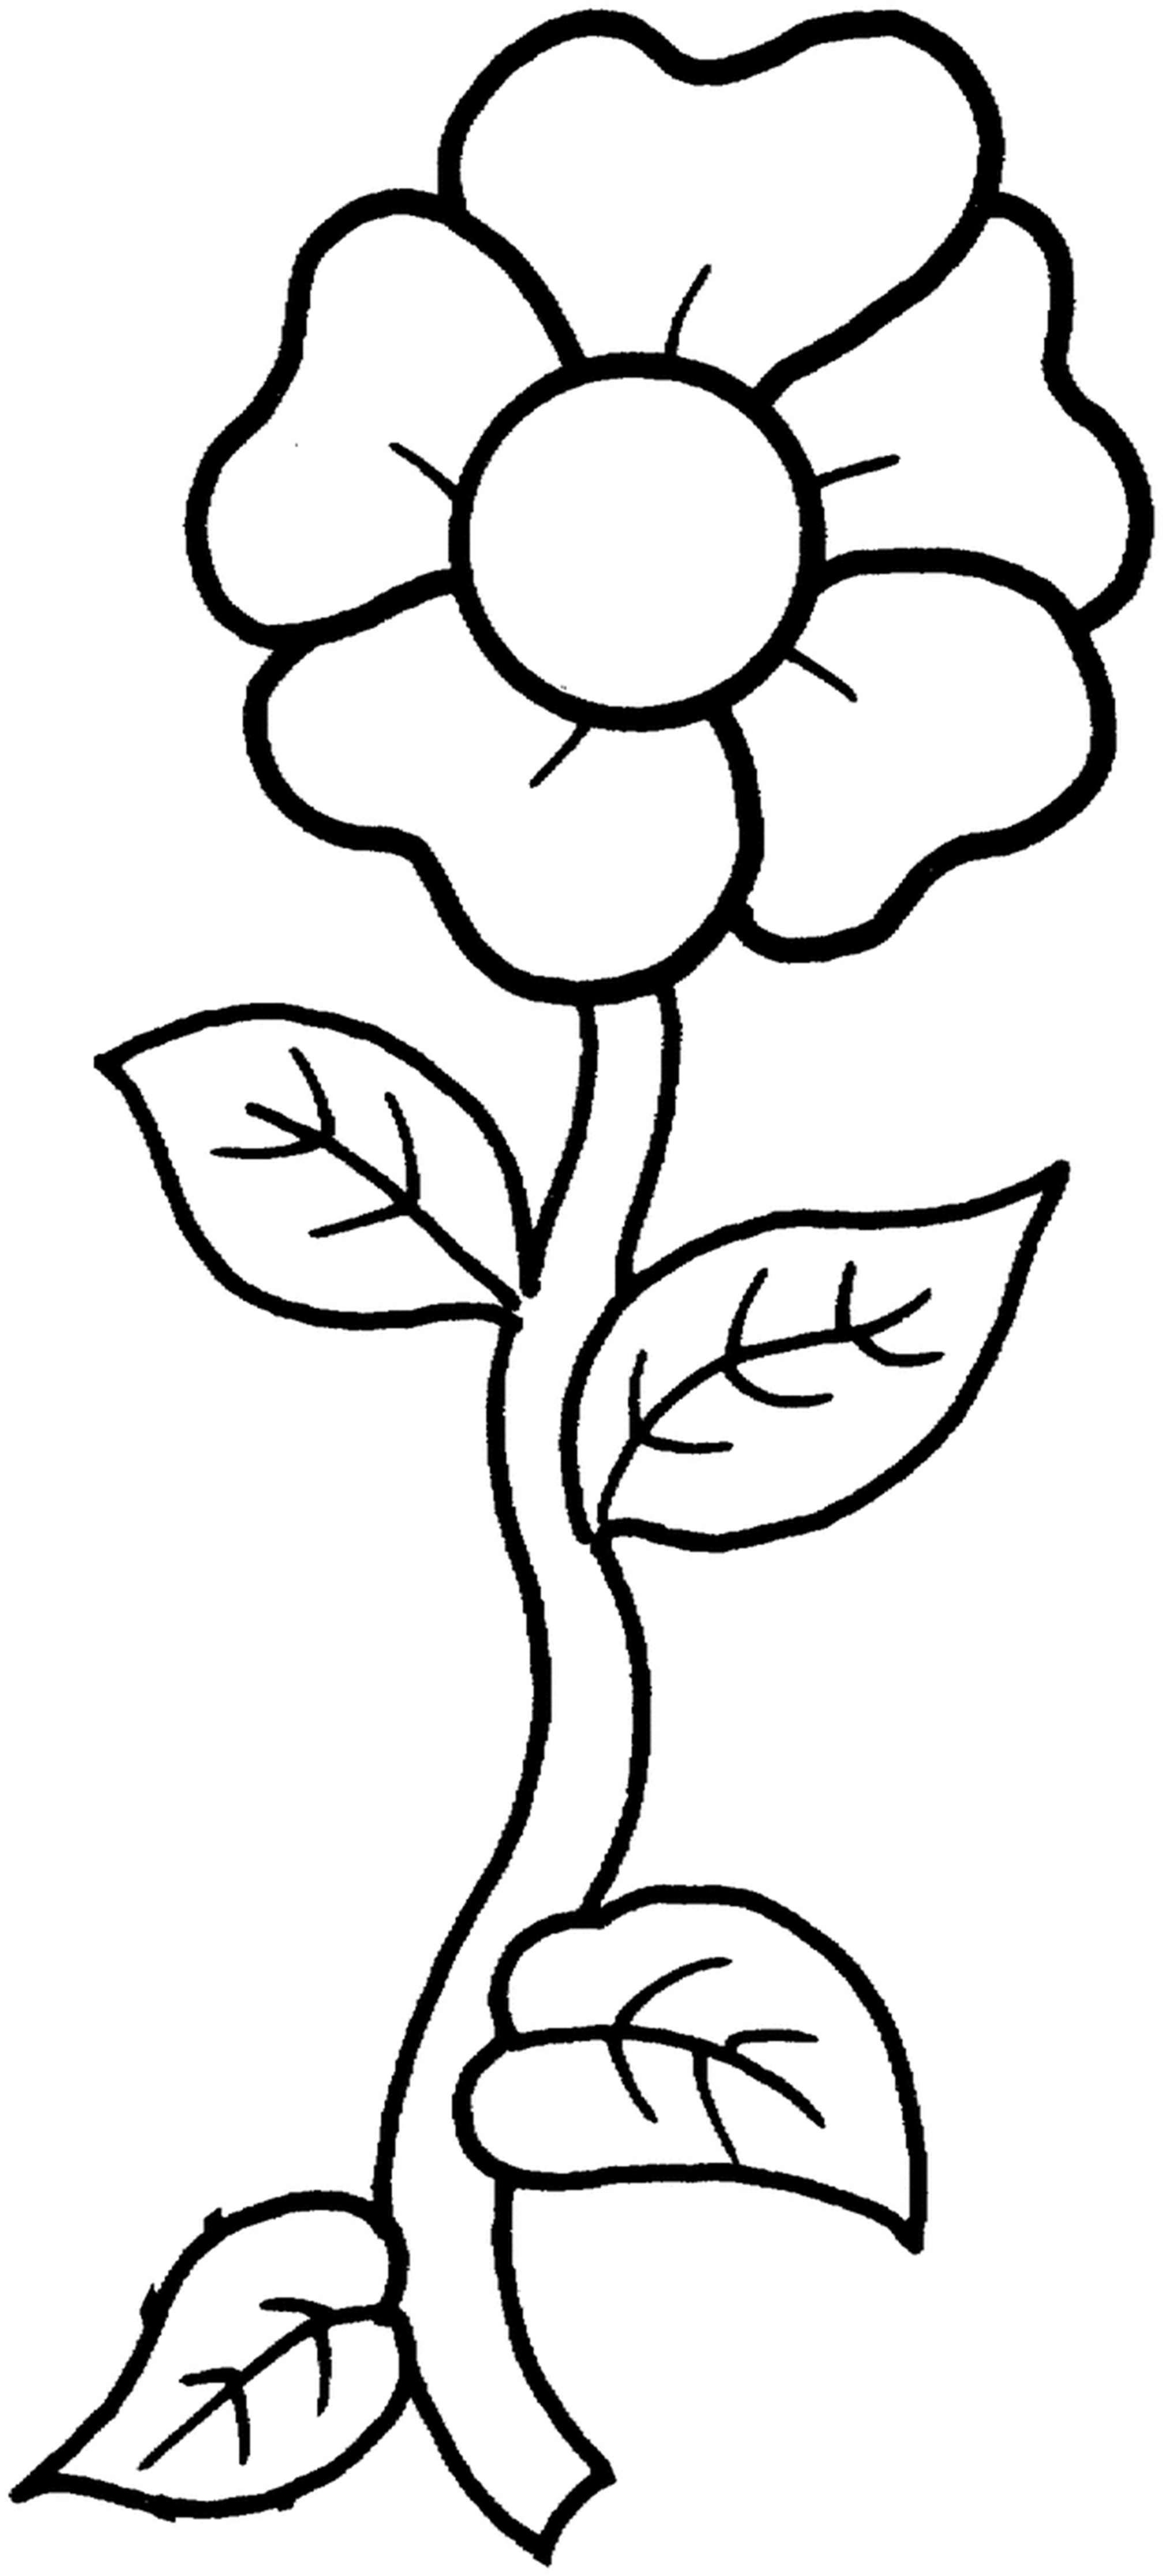 poppy flower coloring page - poppy outline printable clipart best